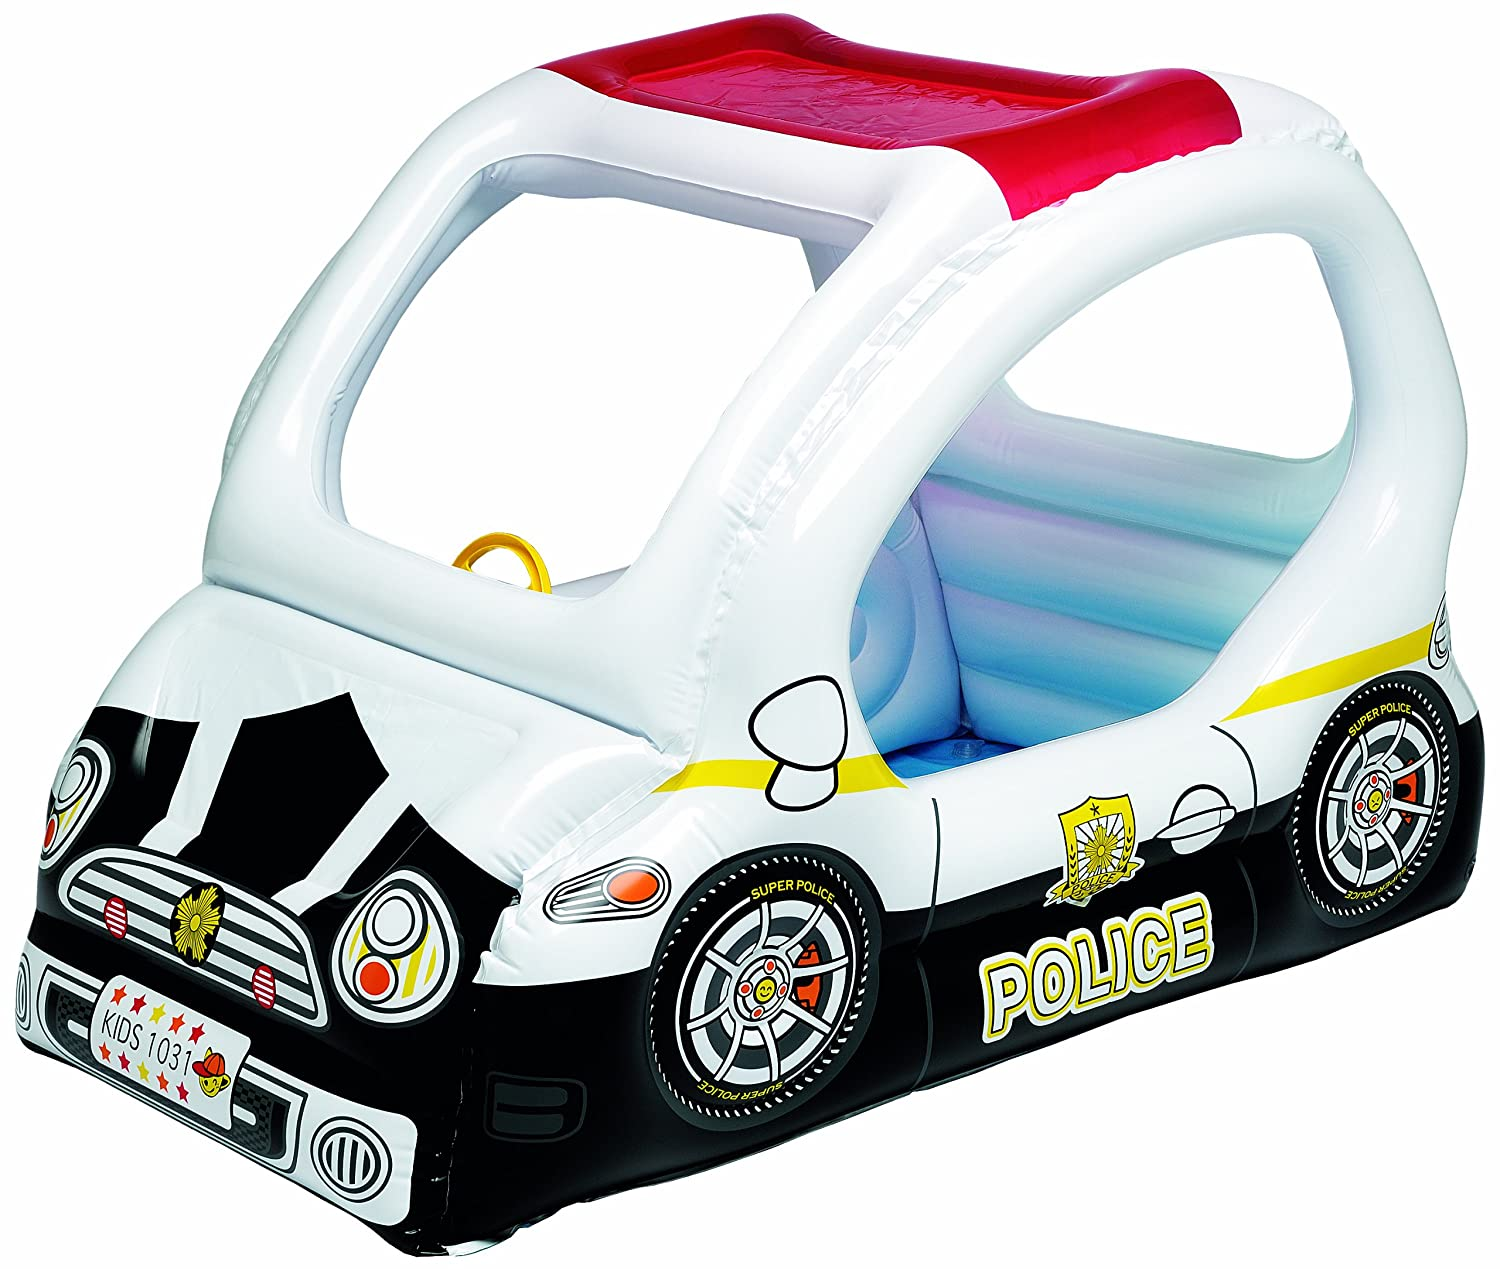 Police Car Pool (japan import) kaufen